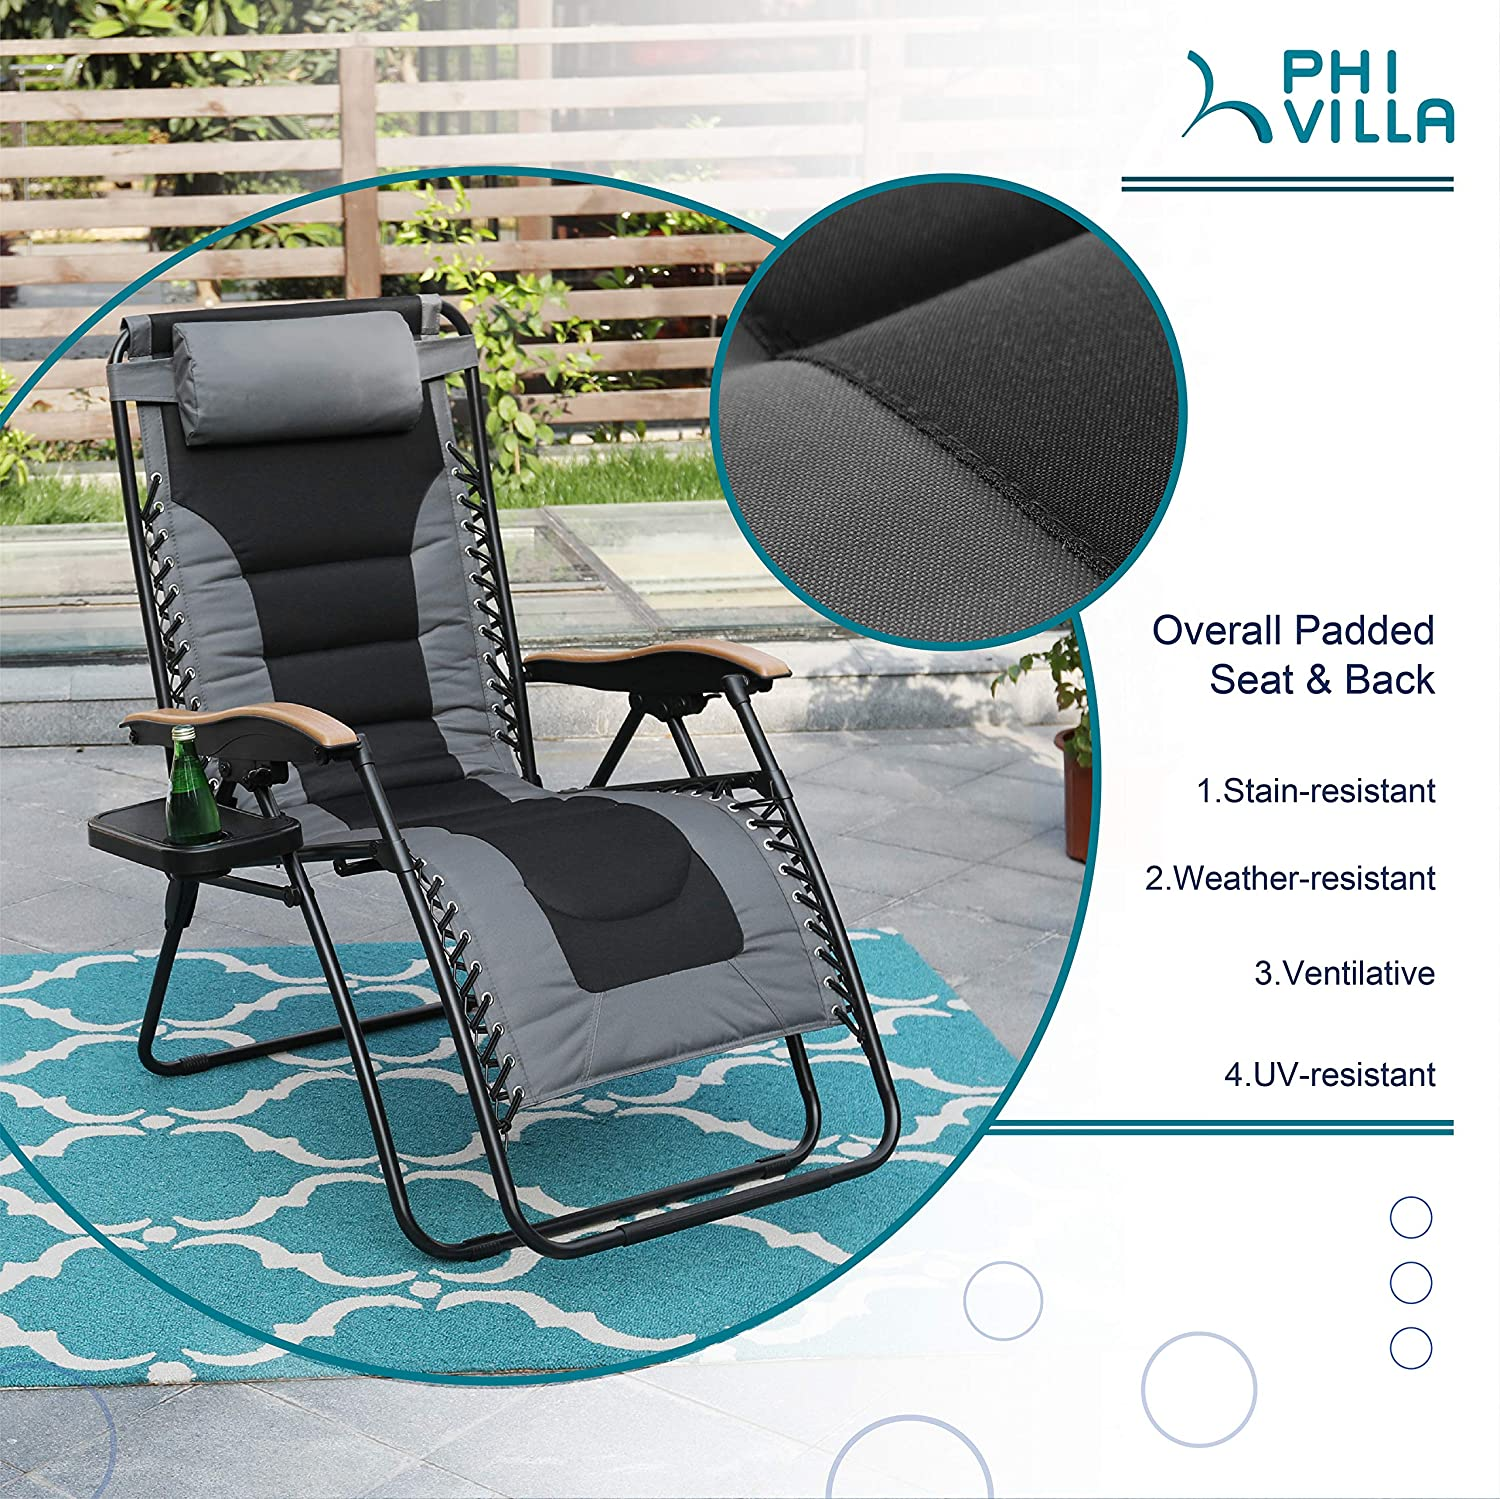 PHI VILLA XL Zero Gravity Chair Padded Recliner Oversize Lounge Chair with Free Cup Holder Grey